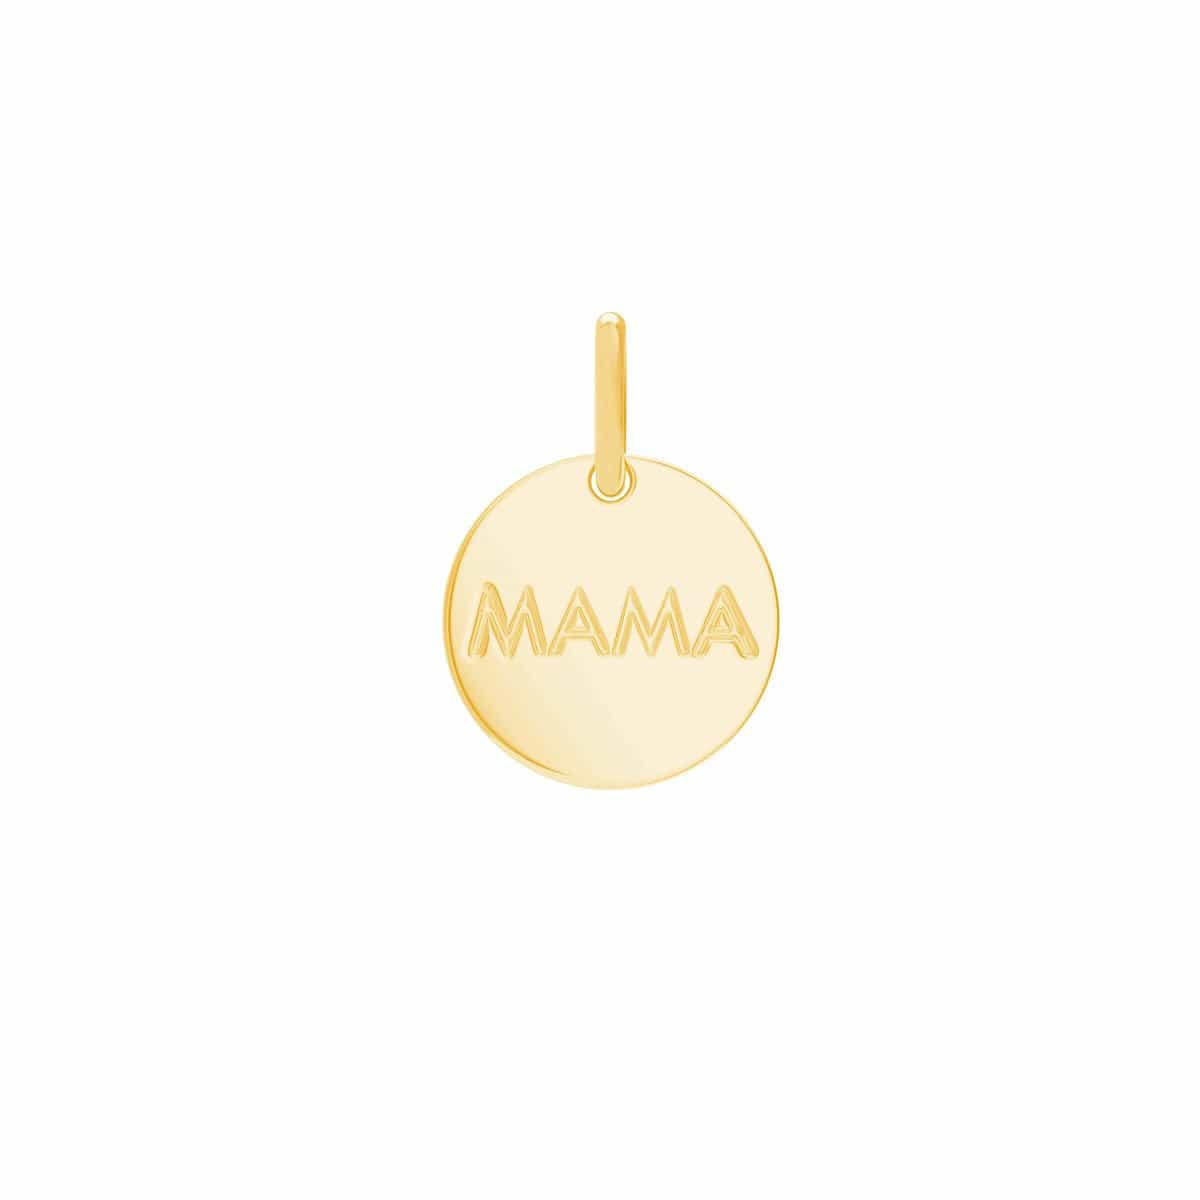 Engravable Round Coin Charm